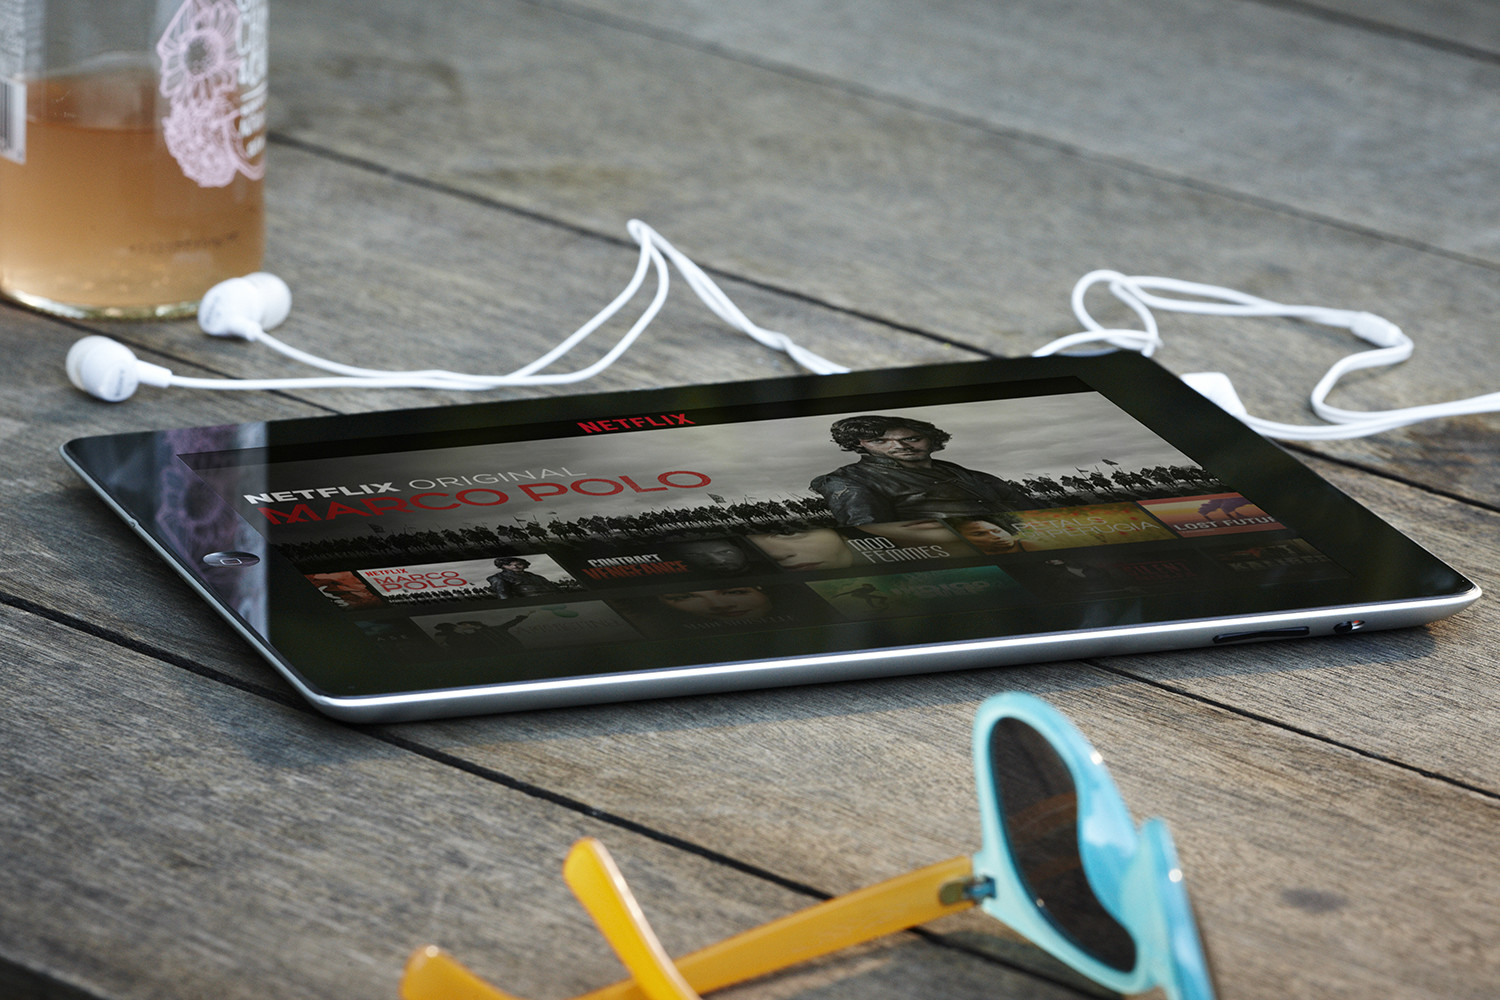 How to download Netflix movies and TV shows to your phone or tablet